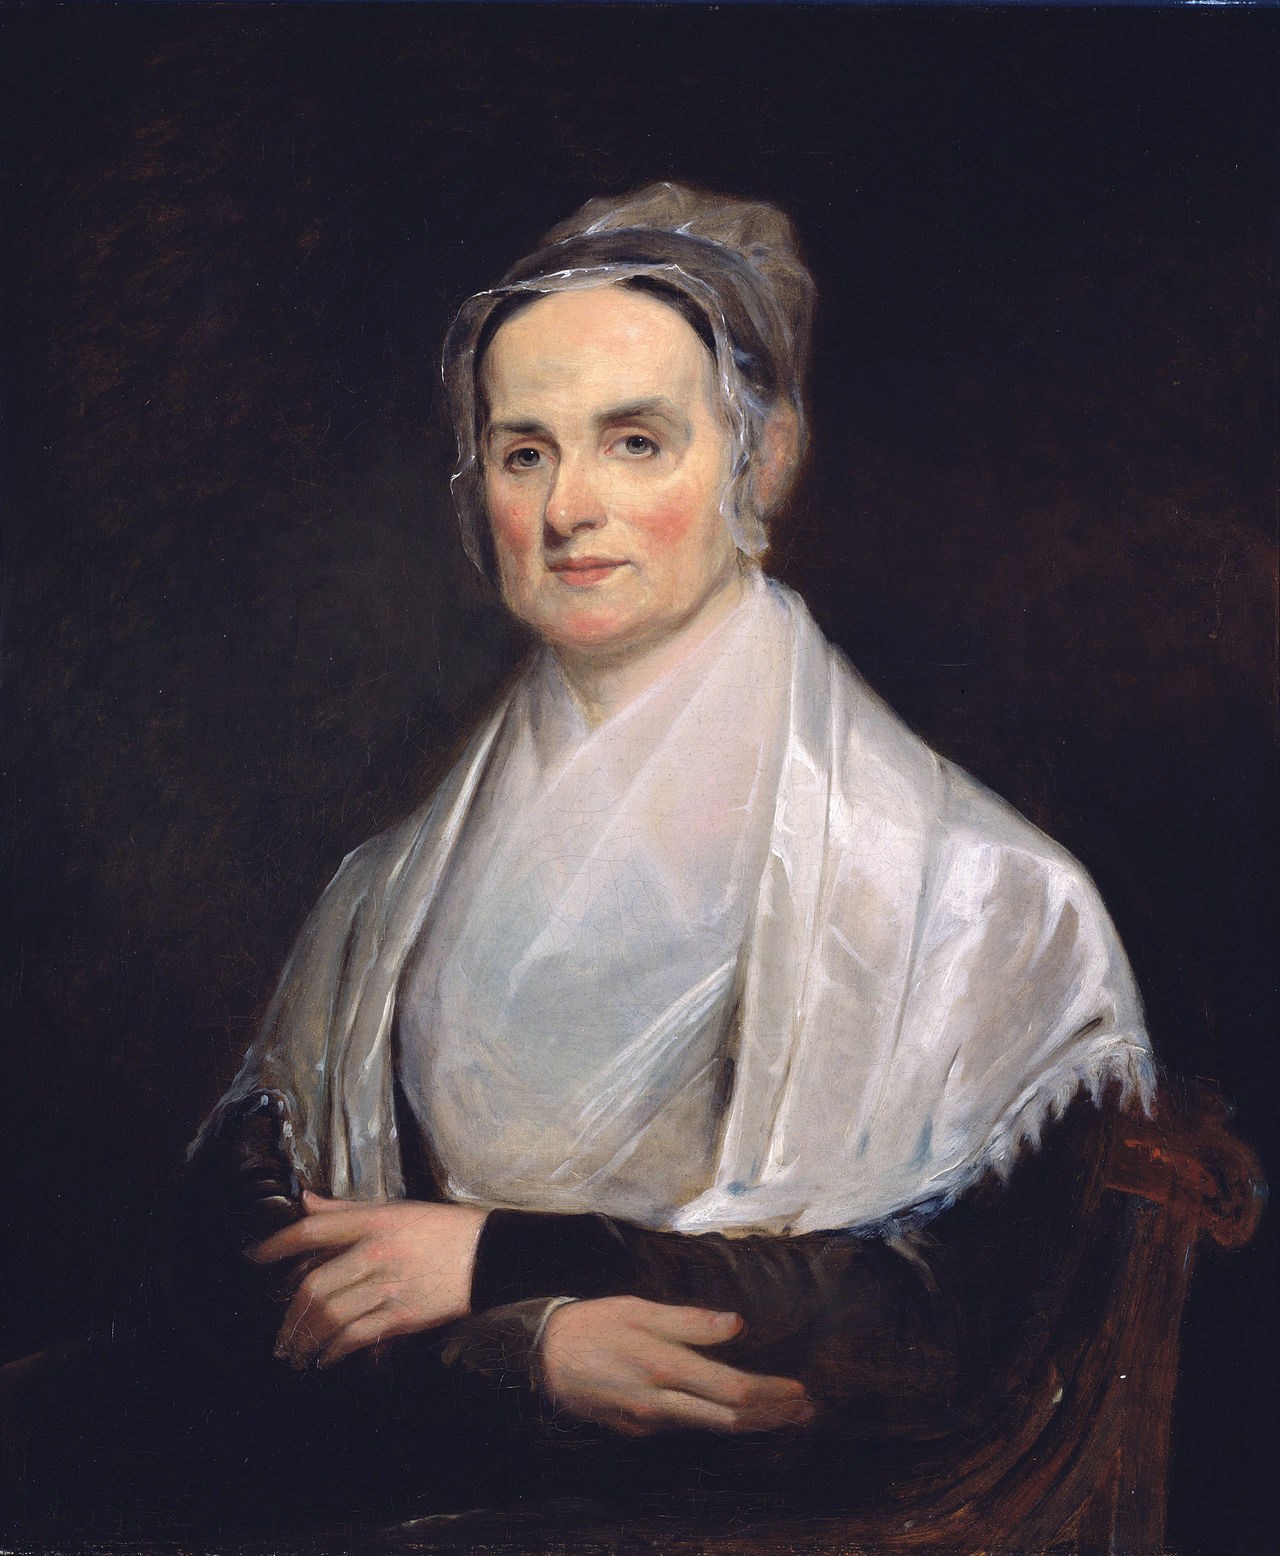 """Lucretia Mott at the age of 49 (1842), at the  National Portrait Gallery  in  Washington, D.C.   Revolutionary Quaker Lucretia Mott changed the world through her work as a leading abolitionist, founder of the American women's rights movement, and social reformer.   As one of Swarthmore's founders, she changed the College with her philanthropic and vocal support, ensuring that students would have access to an education """"equal to that of the best institutions of learning in our country."""" And it is still that."""